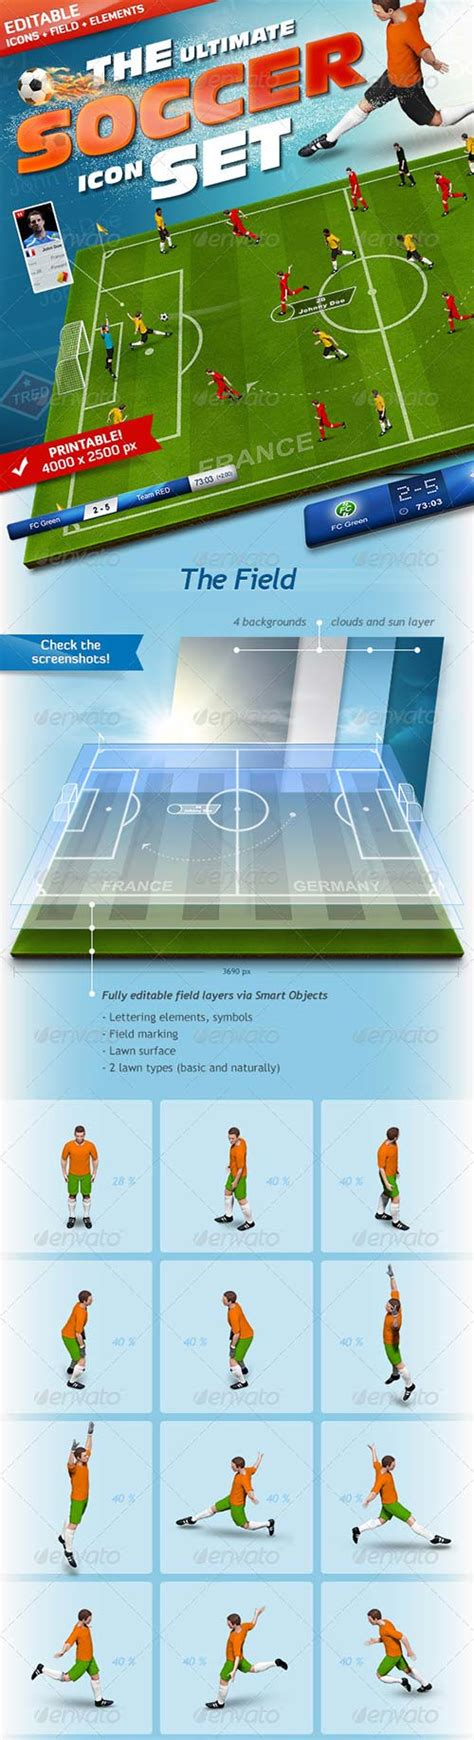 Kickers Psd graphicriver the soccer set kicker icons field and